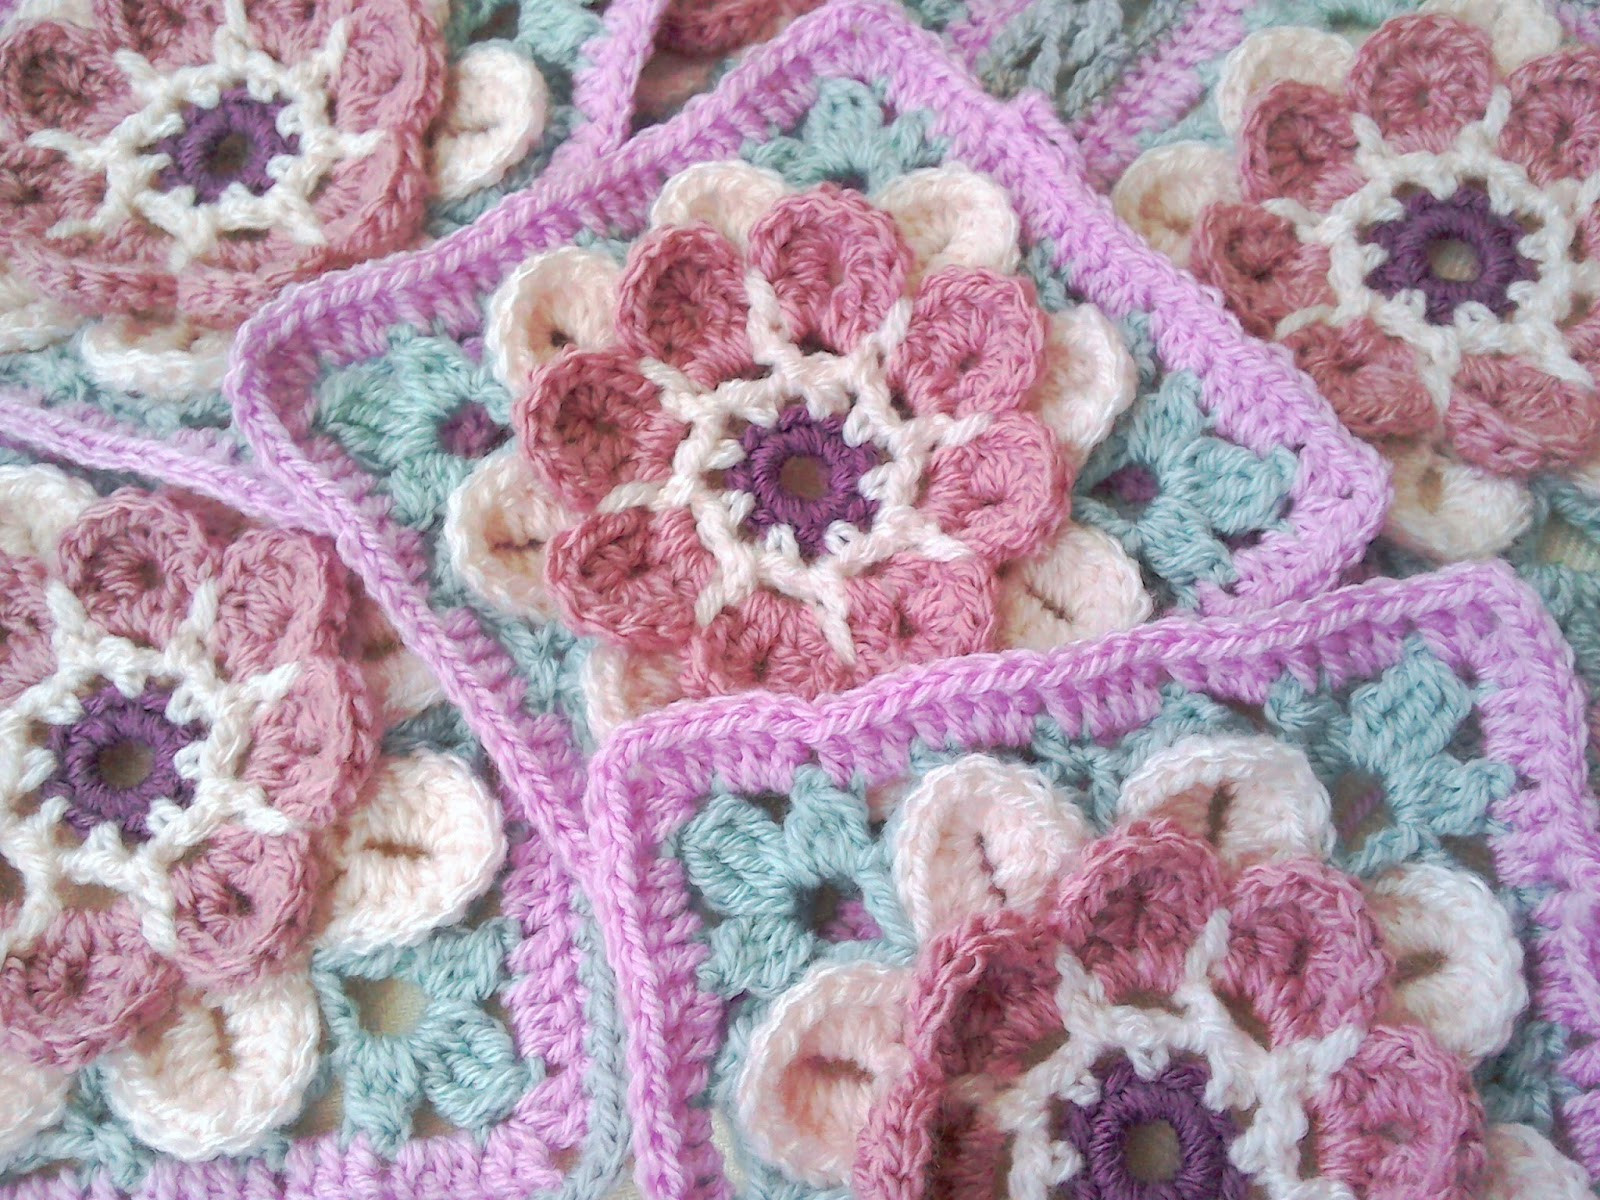 Crochet Terms Inspirational Cuppa Crochet Moon Blossom Uk and Us Terms A Free Pattern Of Great 42 Photos Crochet Terms